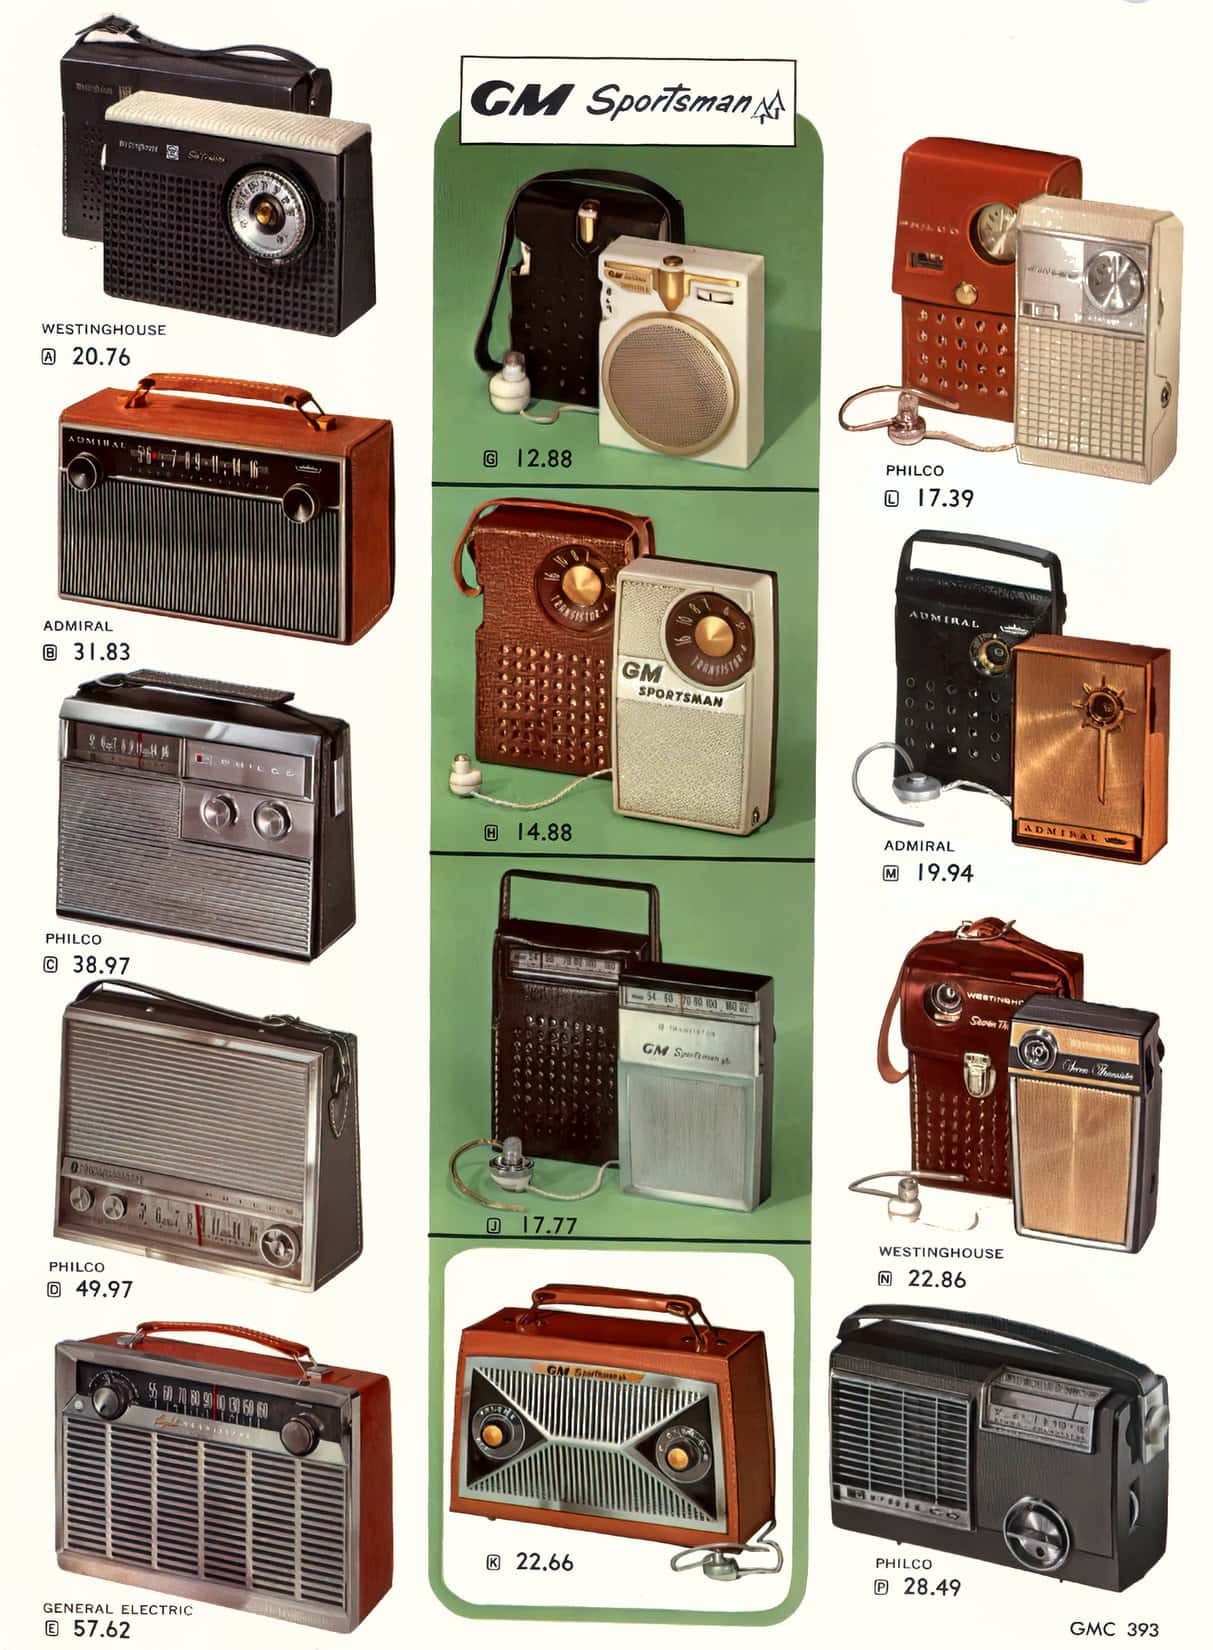 Early vintage portable radios from the 1950s